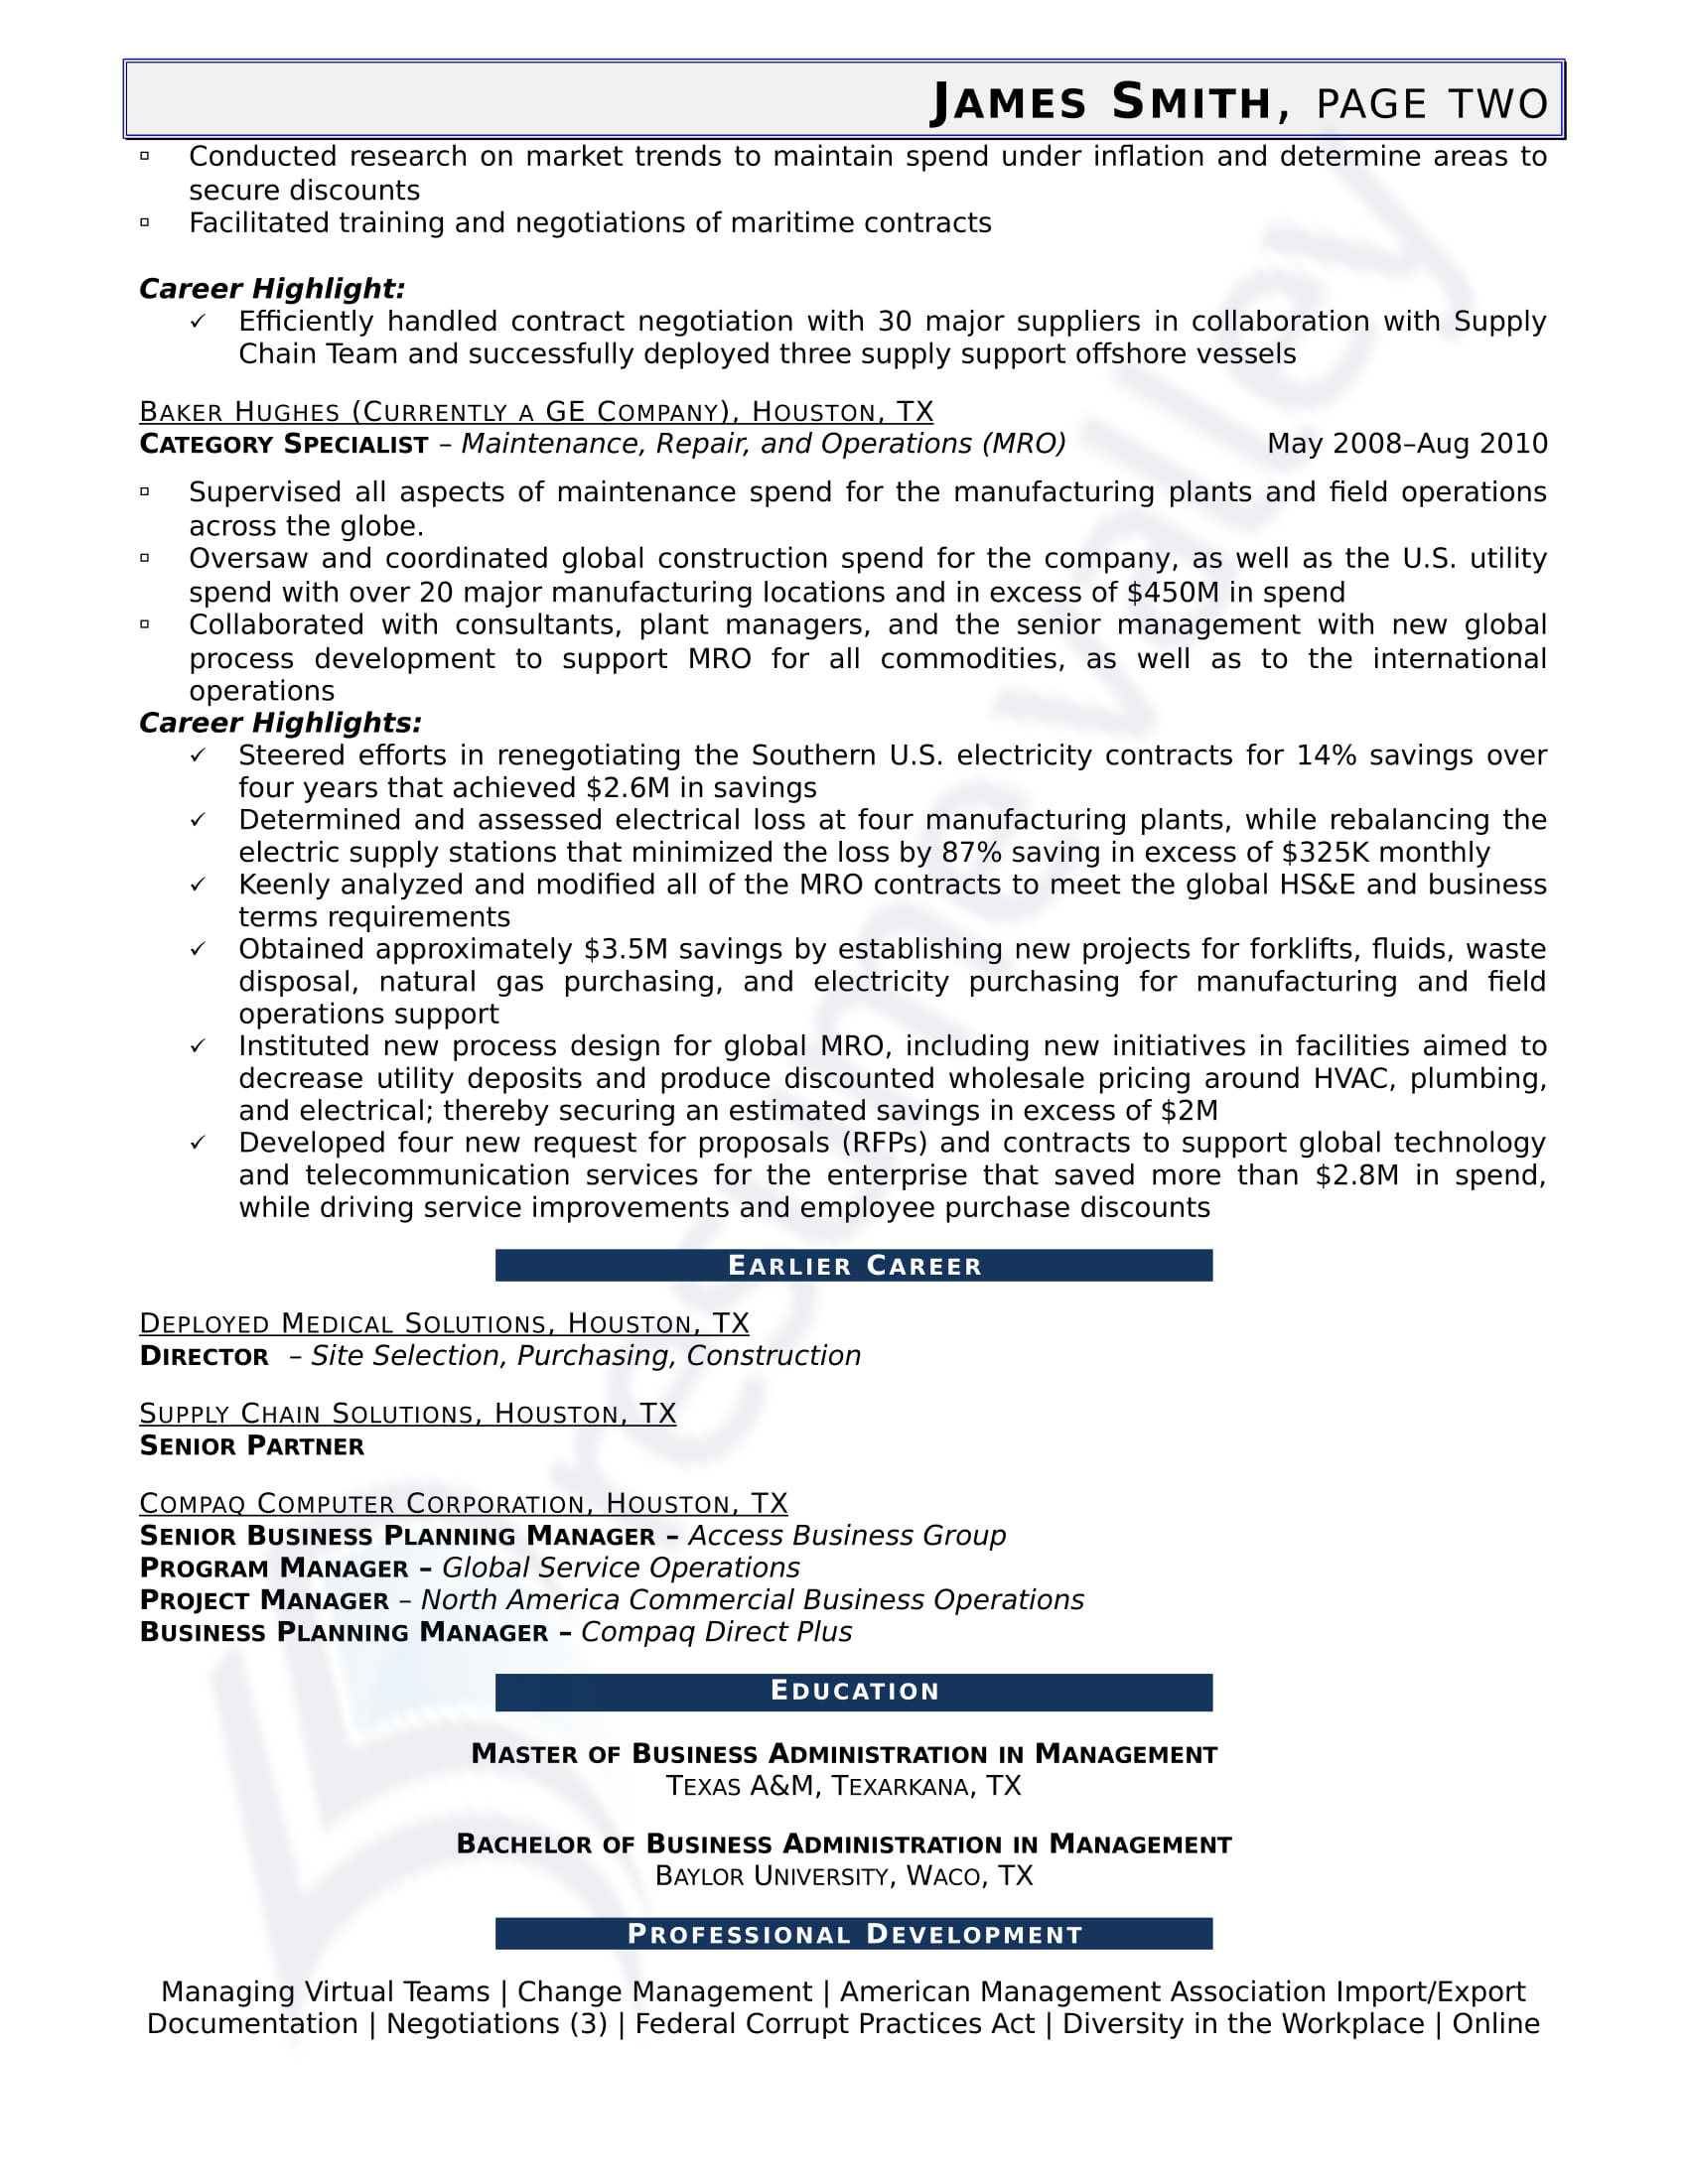 Global Category Manager Network Administrator Civilian Resume